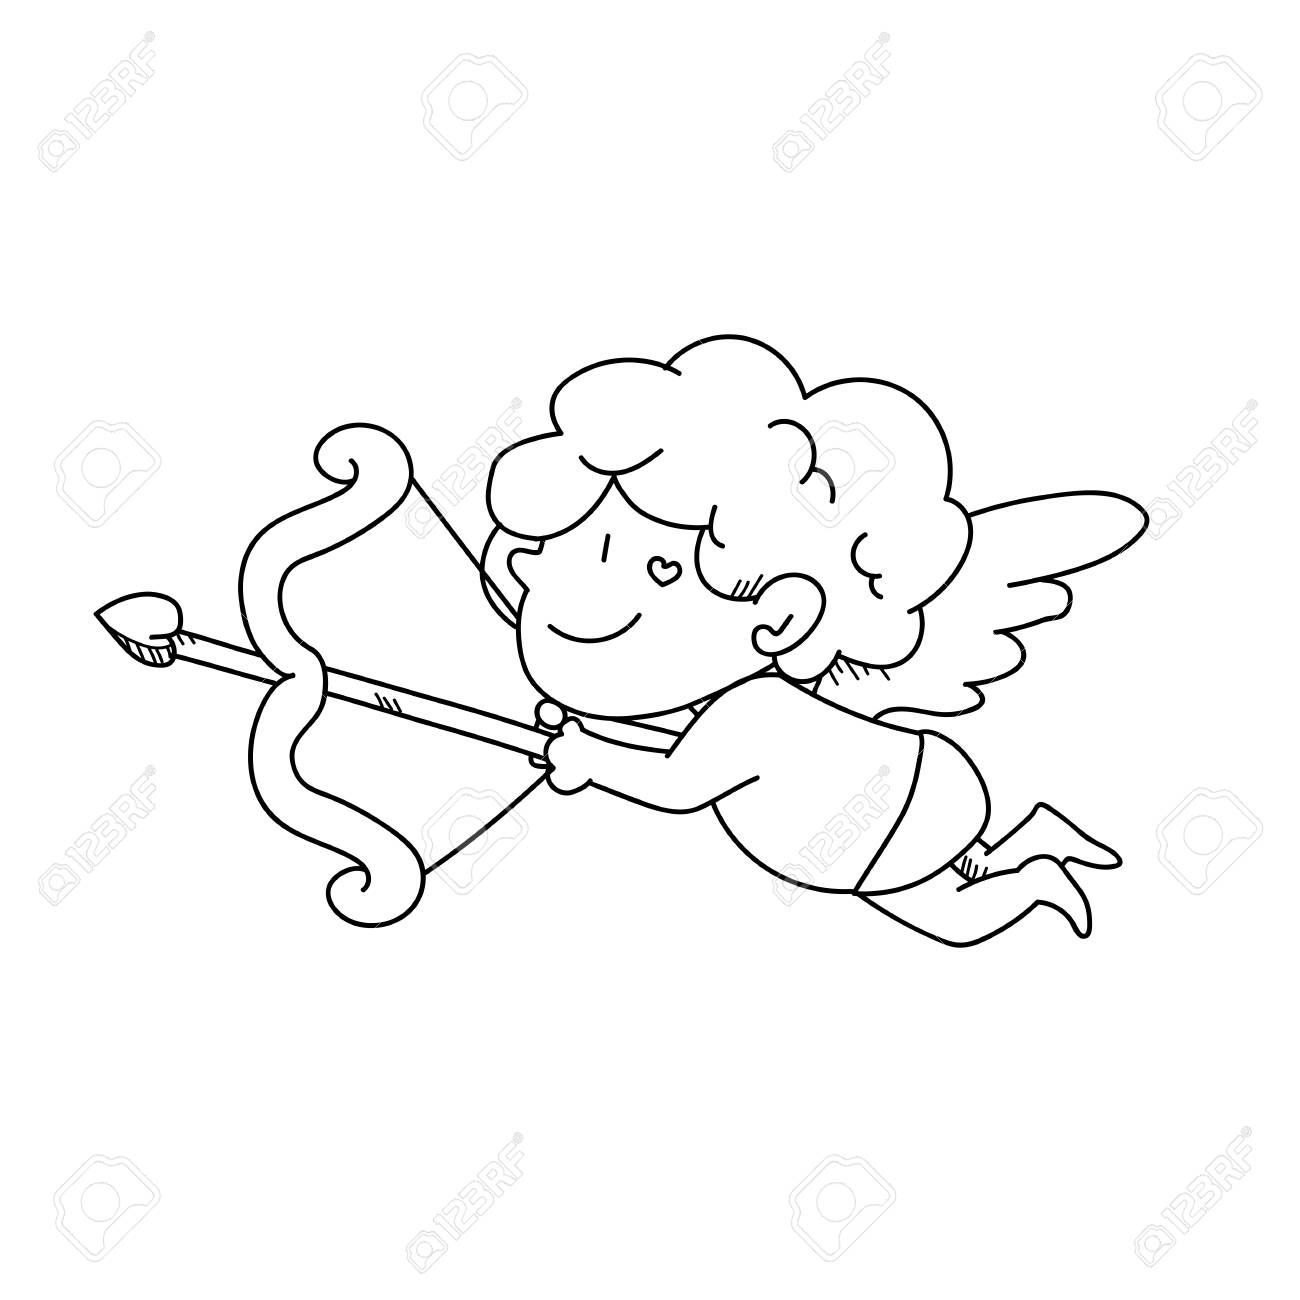 1300x1300 Freehand Drawing Cupid Cartoon Illustration Stock Photo, Picture